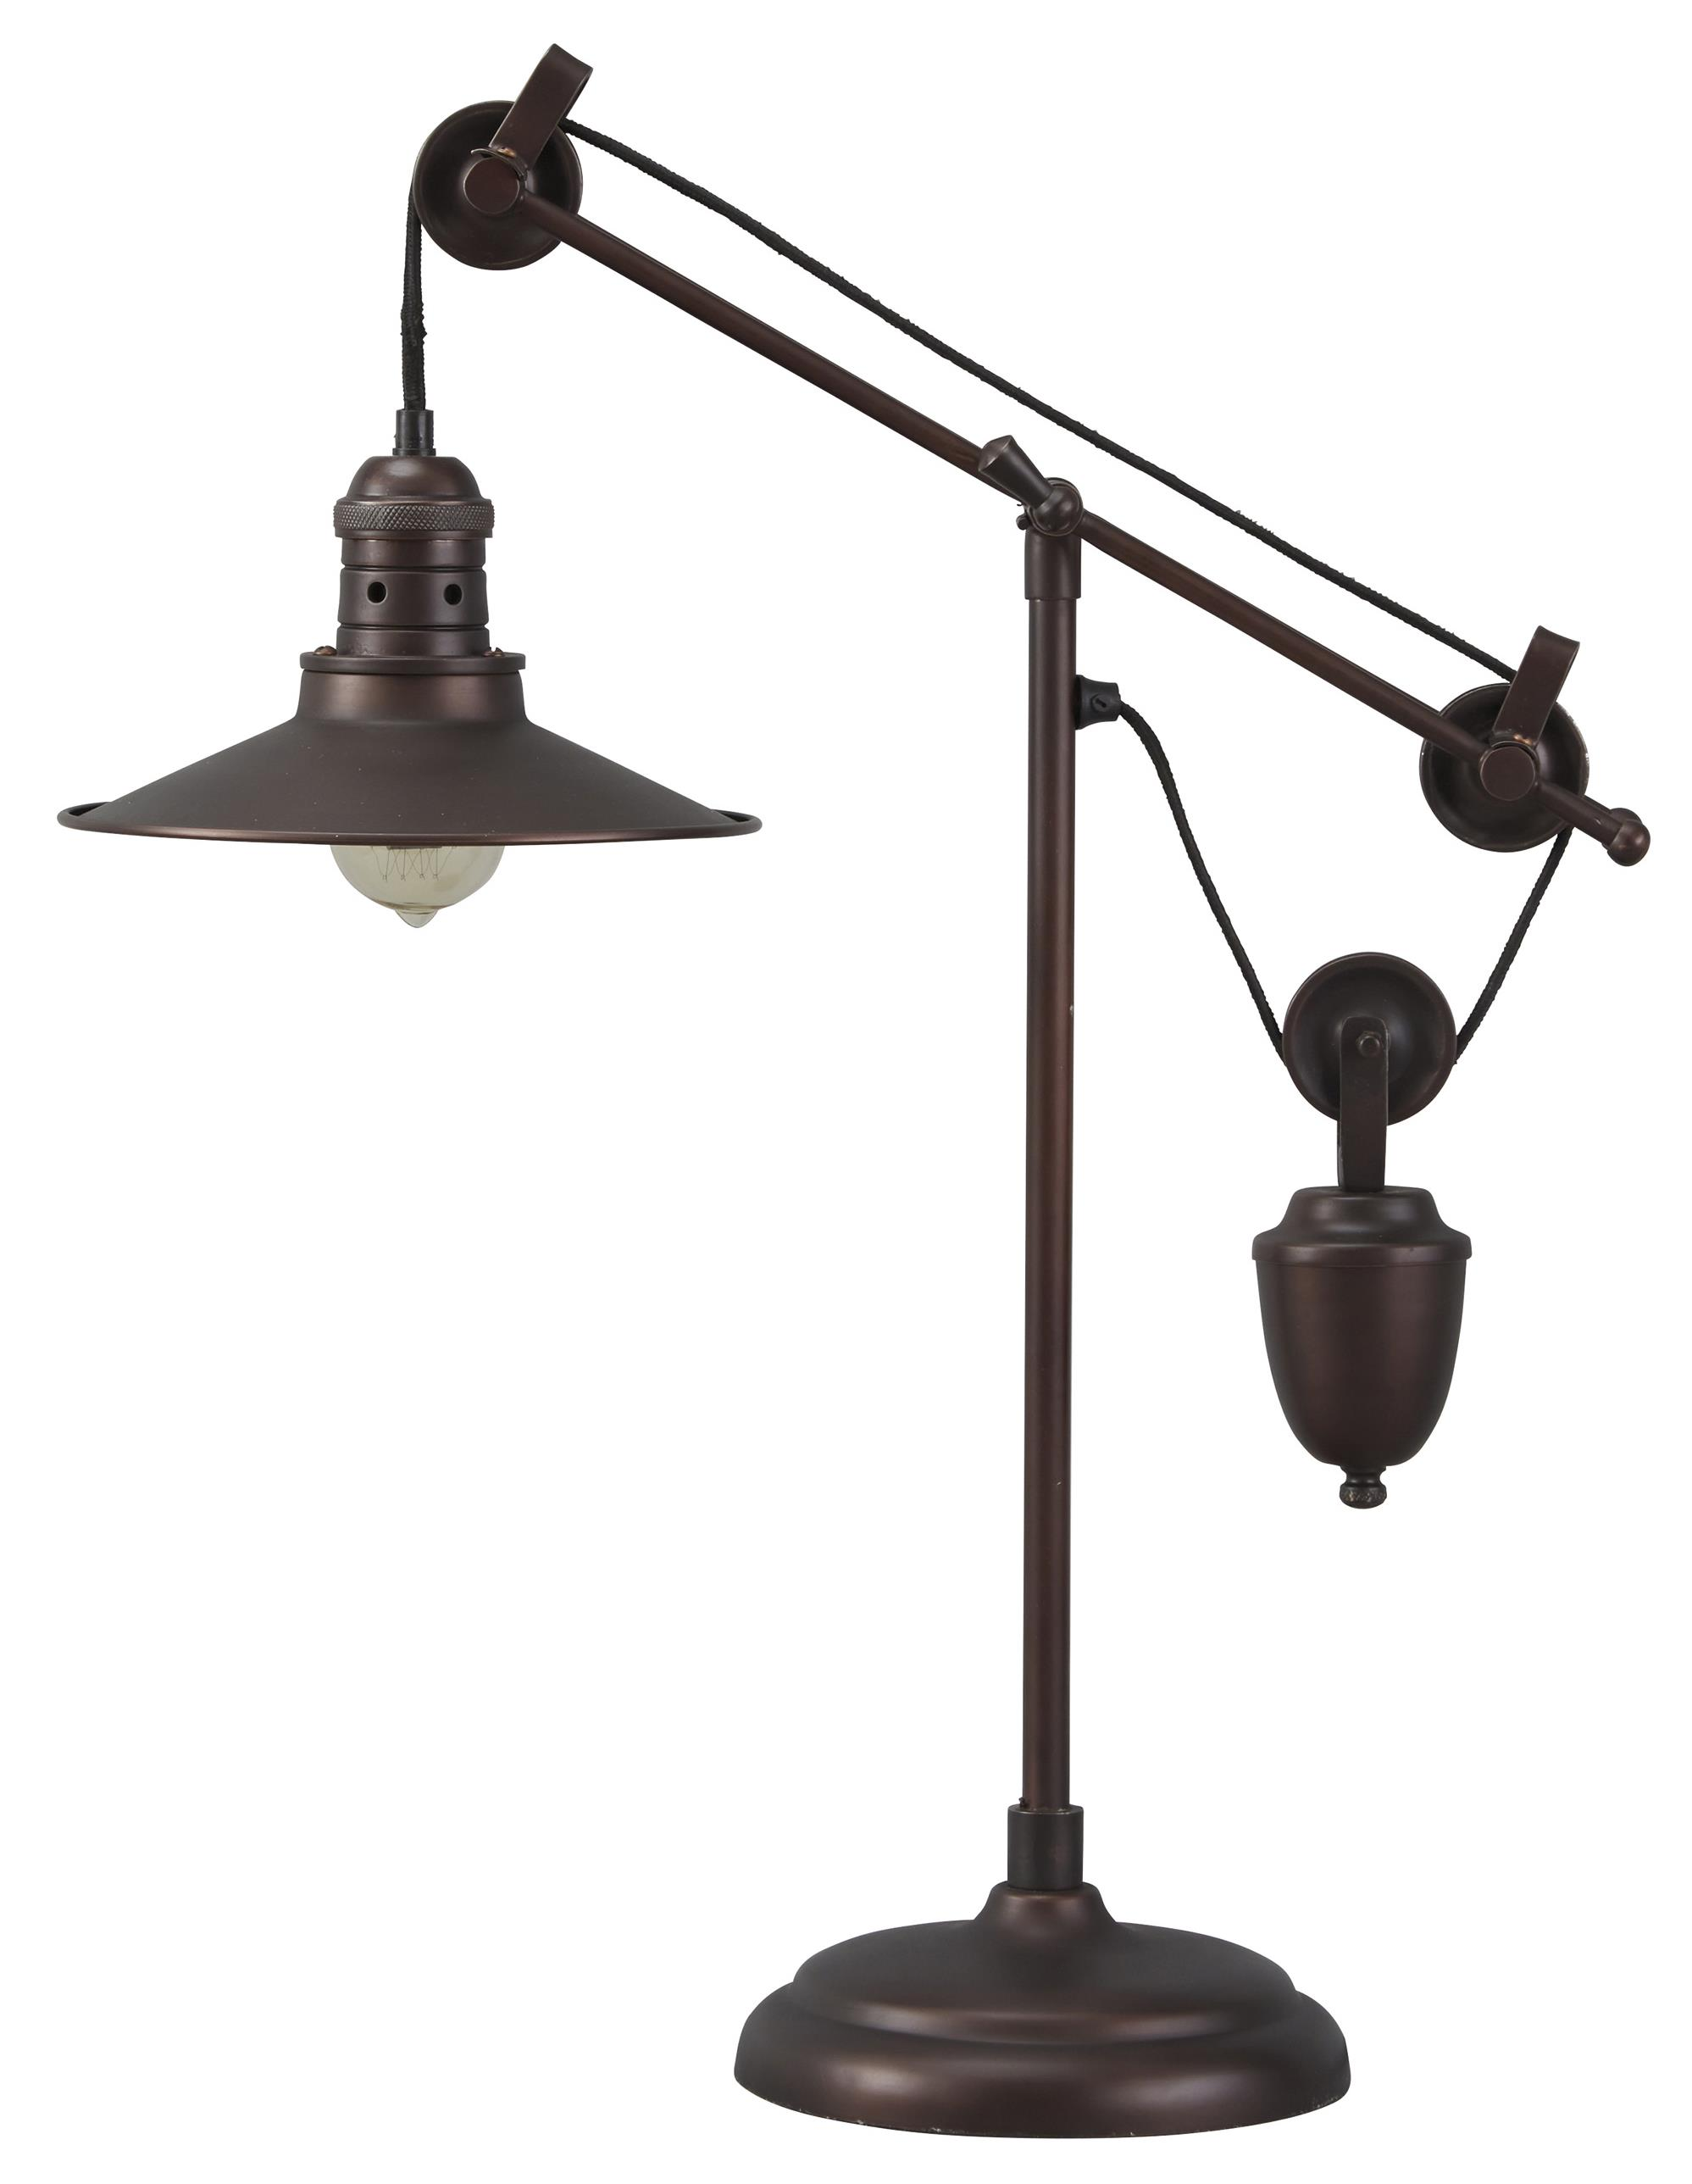 Architect Desk Lamps Ashley Signature Design Lamps Vintage Style L734152